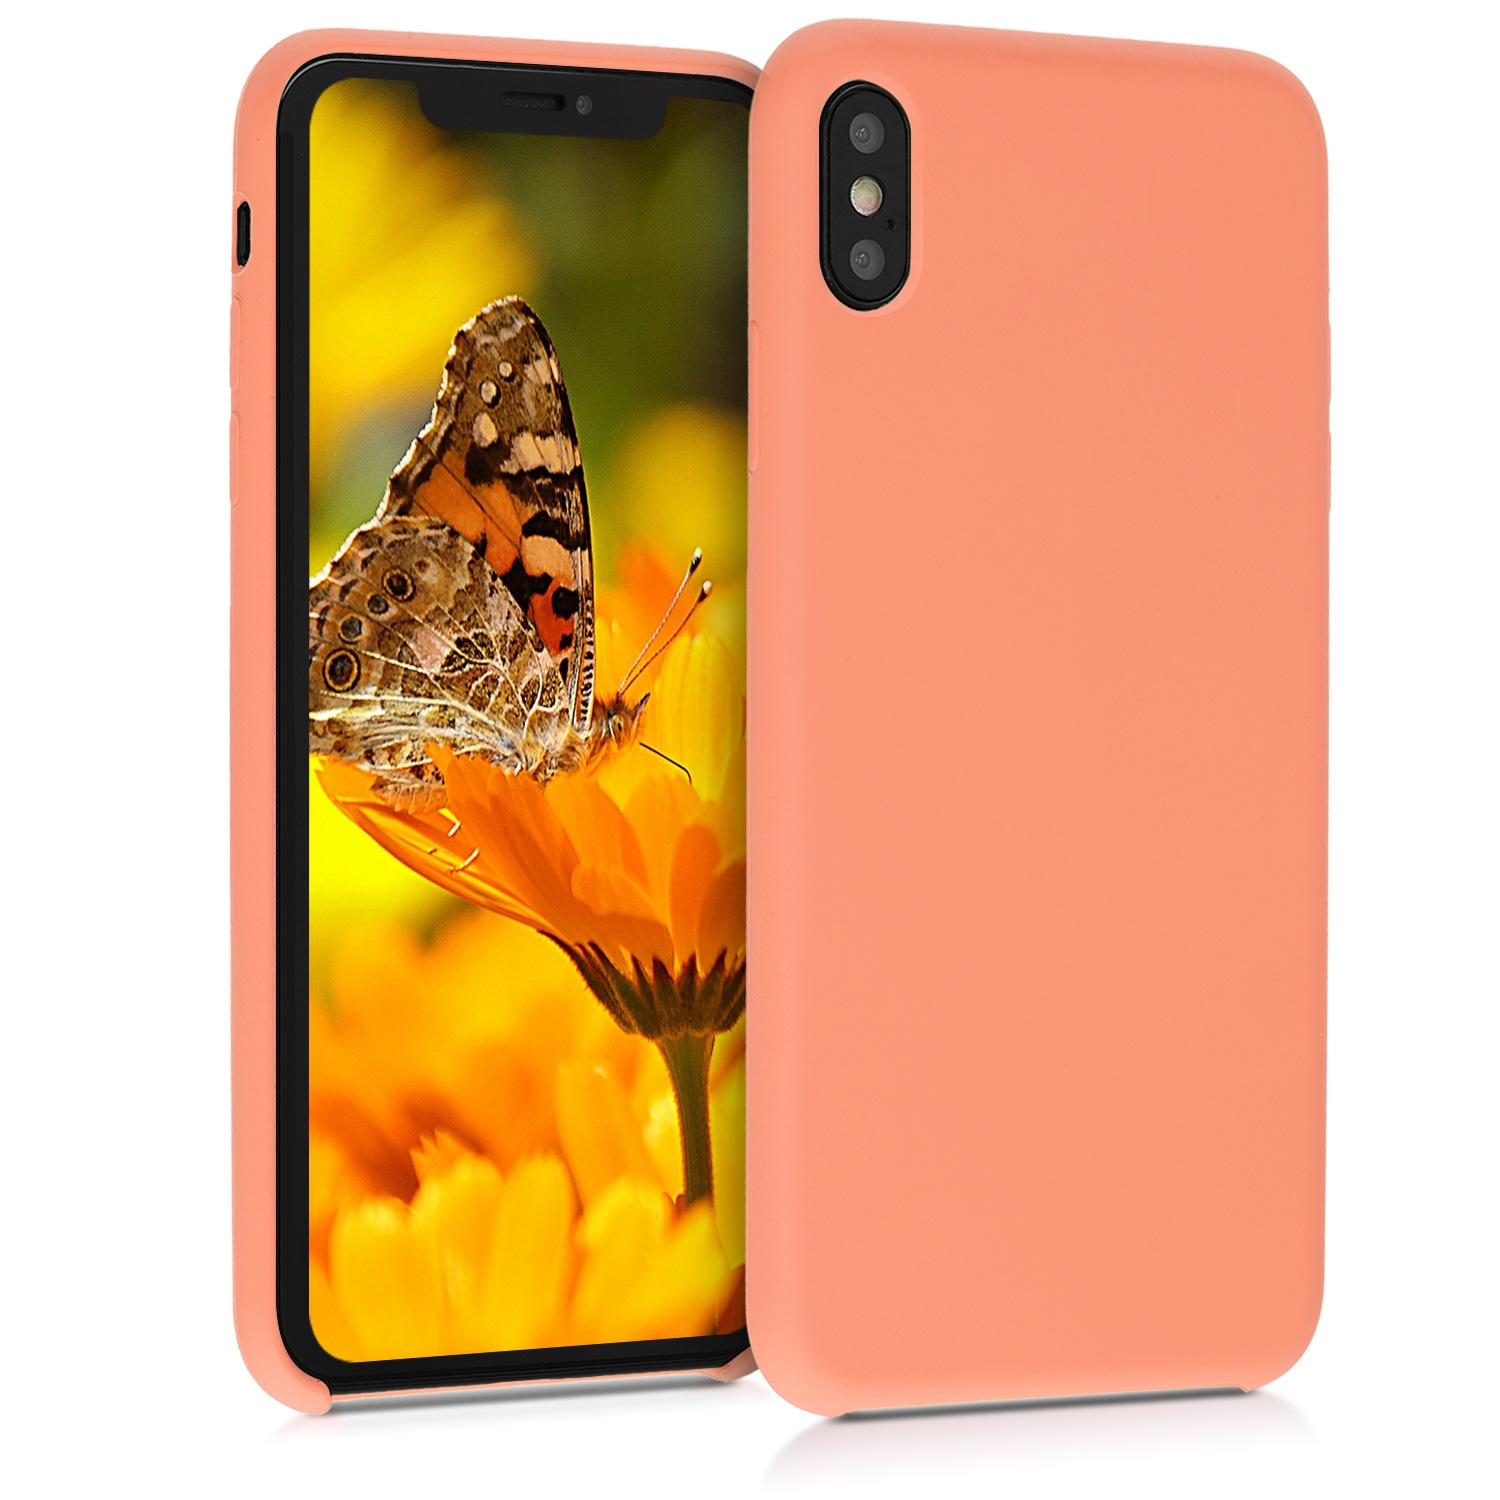 KW Θήκη Σιλικόνης iPhone XS Max - Soft Flexible Rubber Protective Cover - Papaya (45909.144)